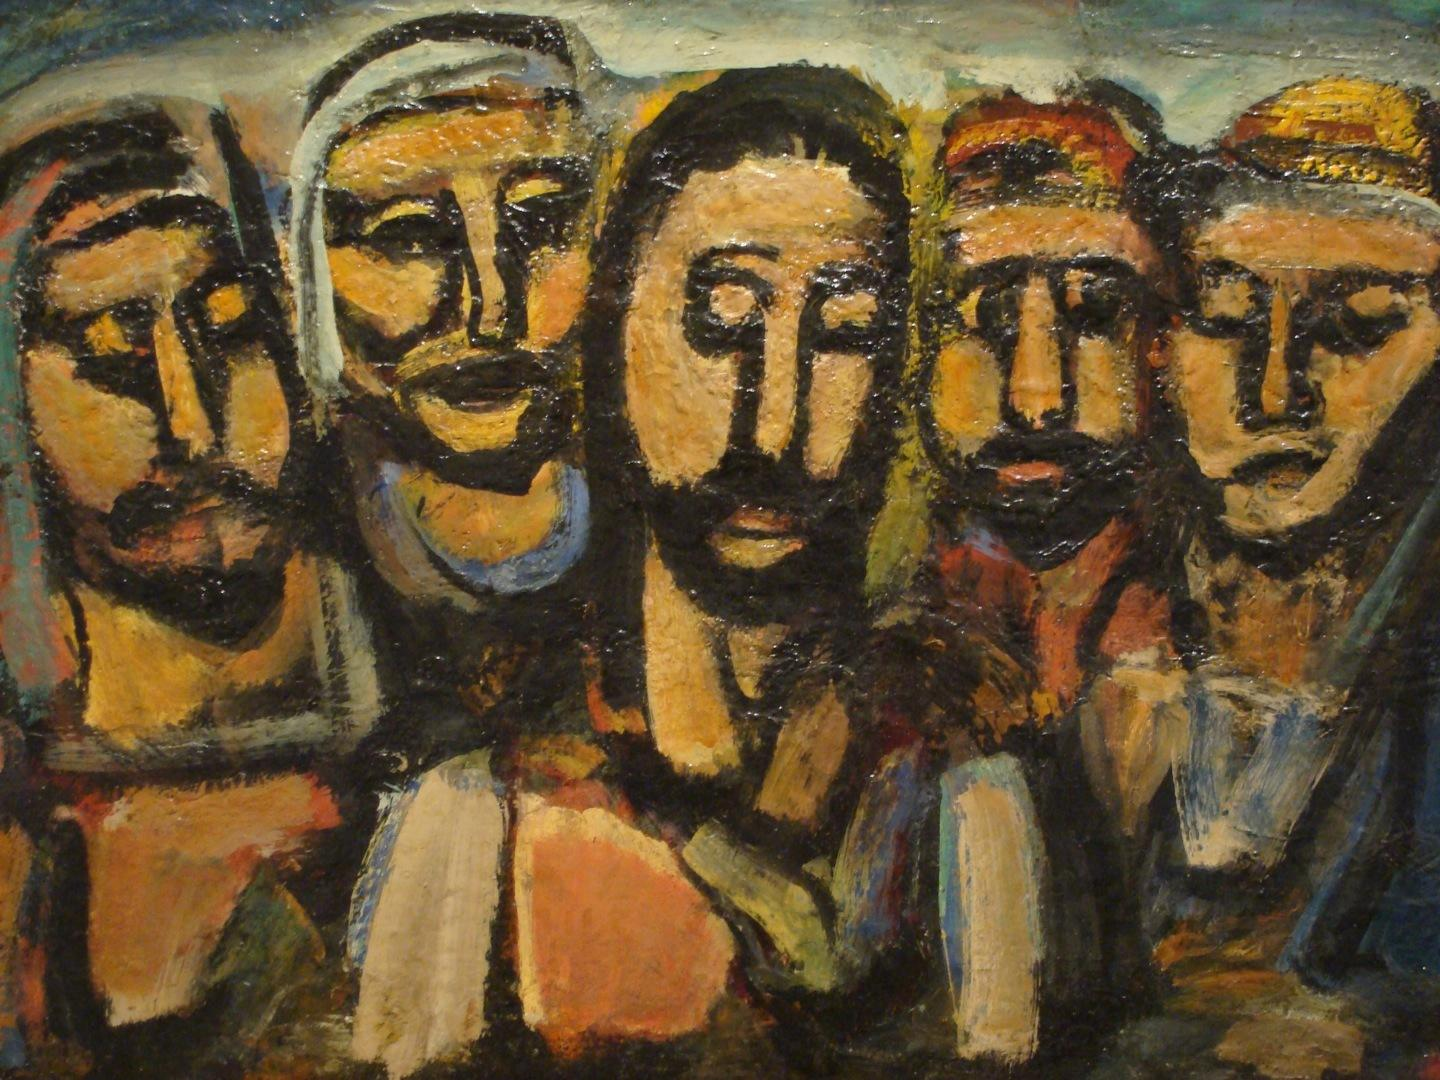 Even the disciples at the Last Supper misunderstood Jesus' mission. Image: George Rouault